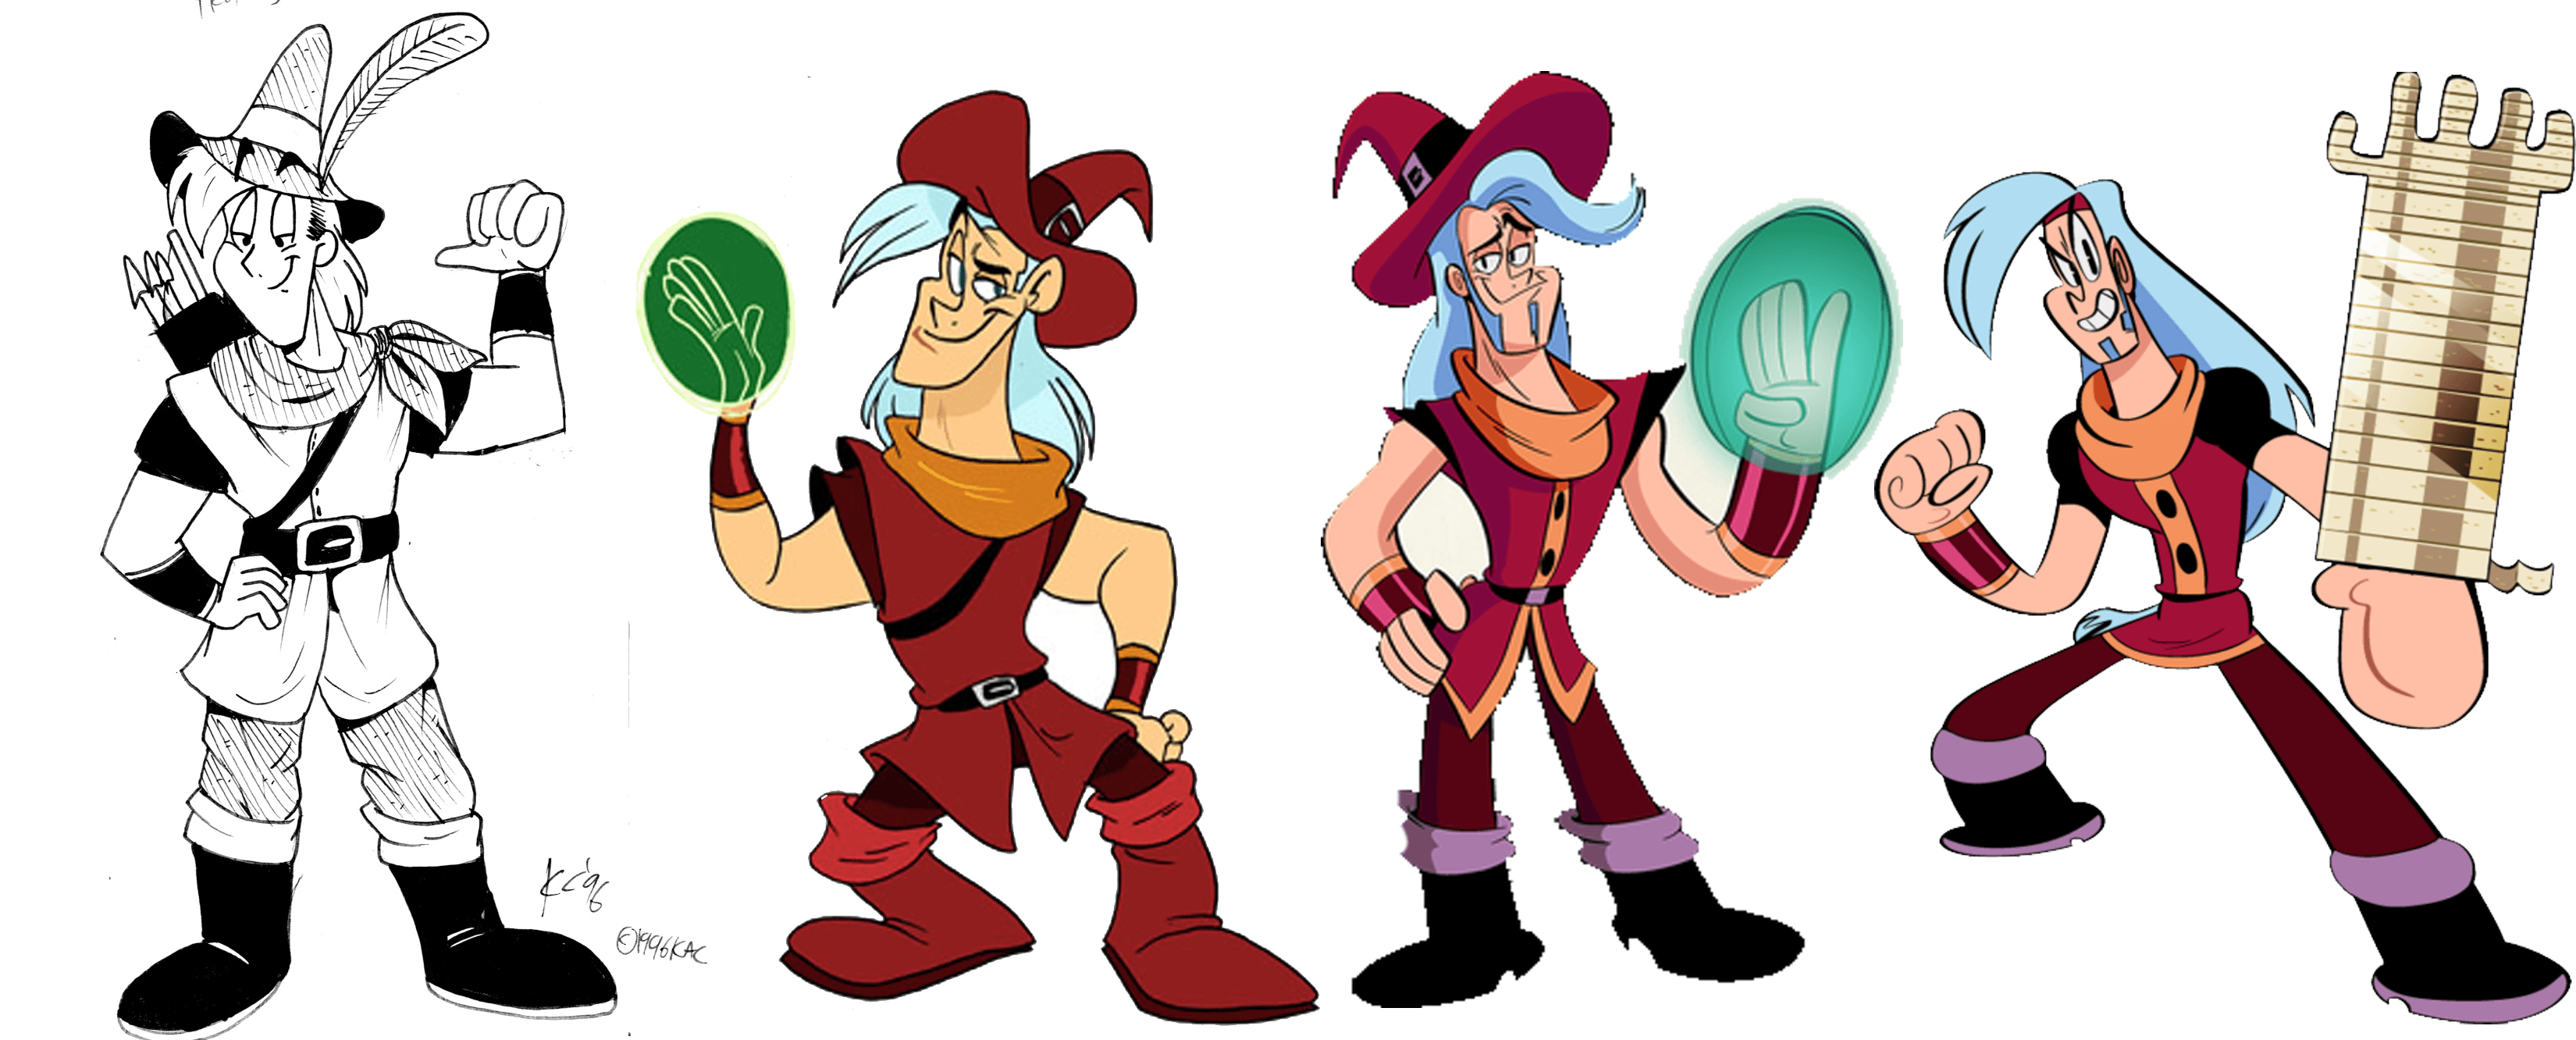 Prohyas Warrior | MIGHTY MAGISWORDS! | Pinterest | Mighty magiswords ...